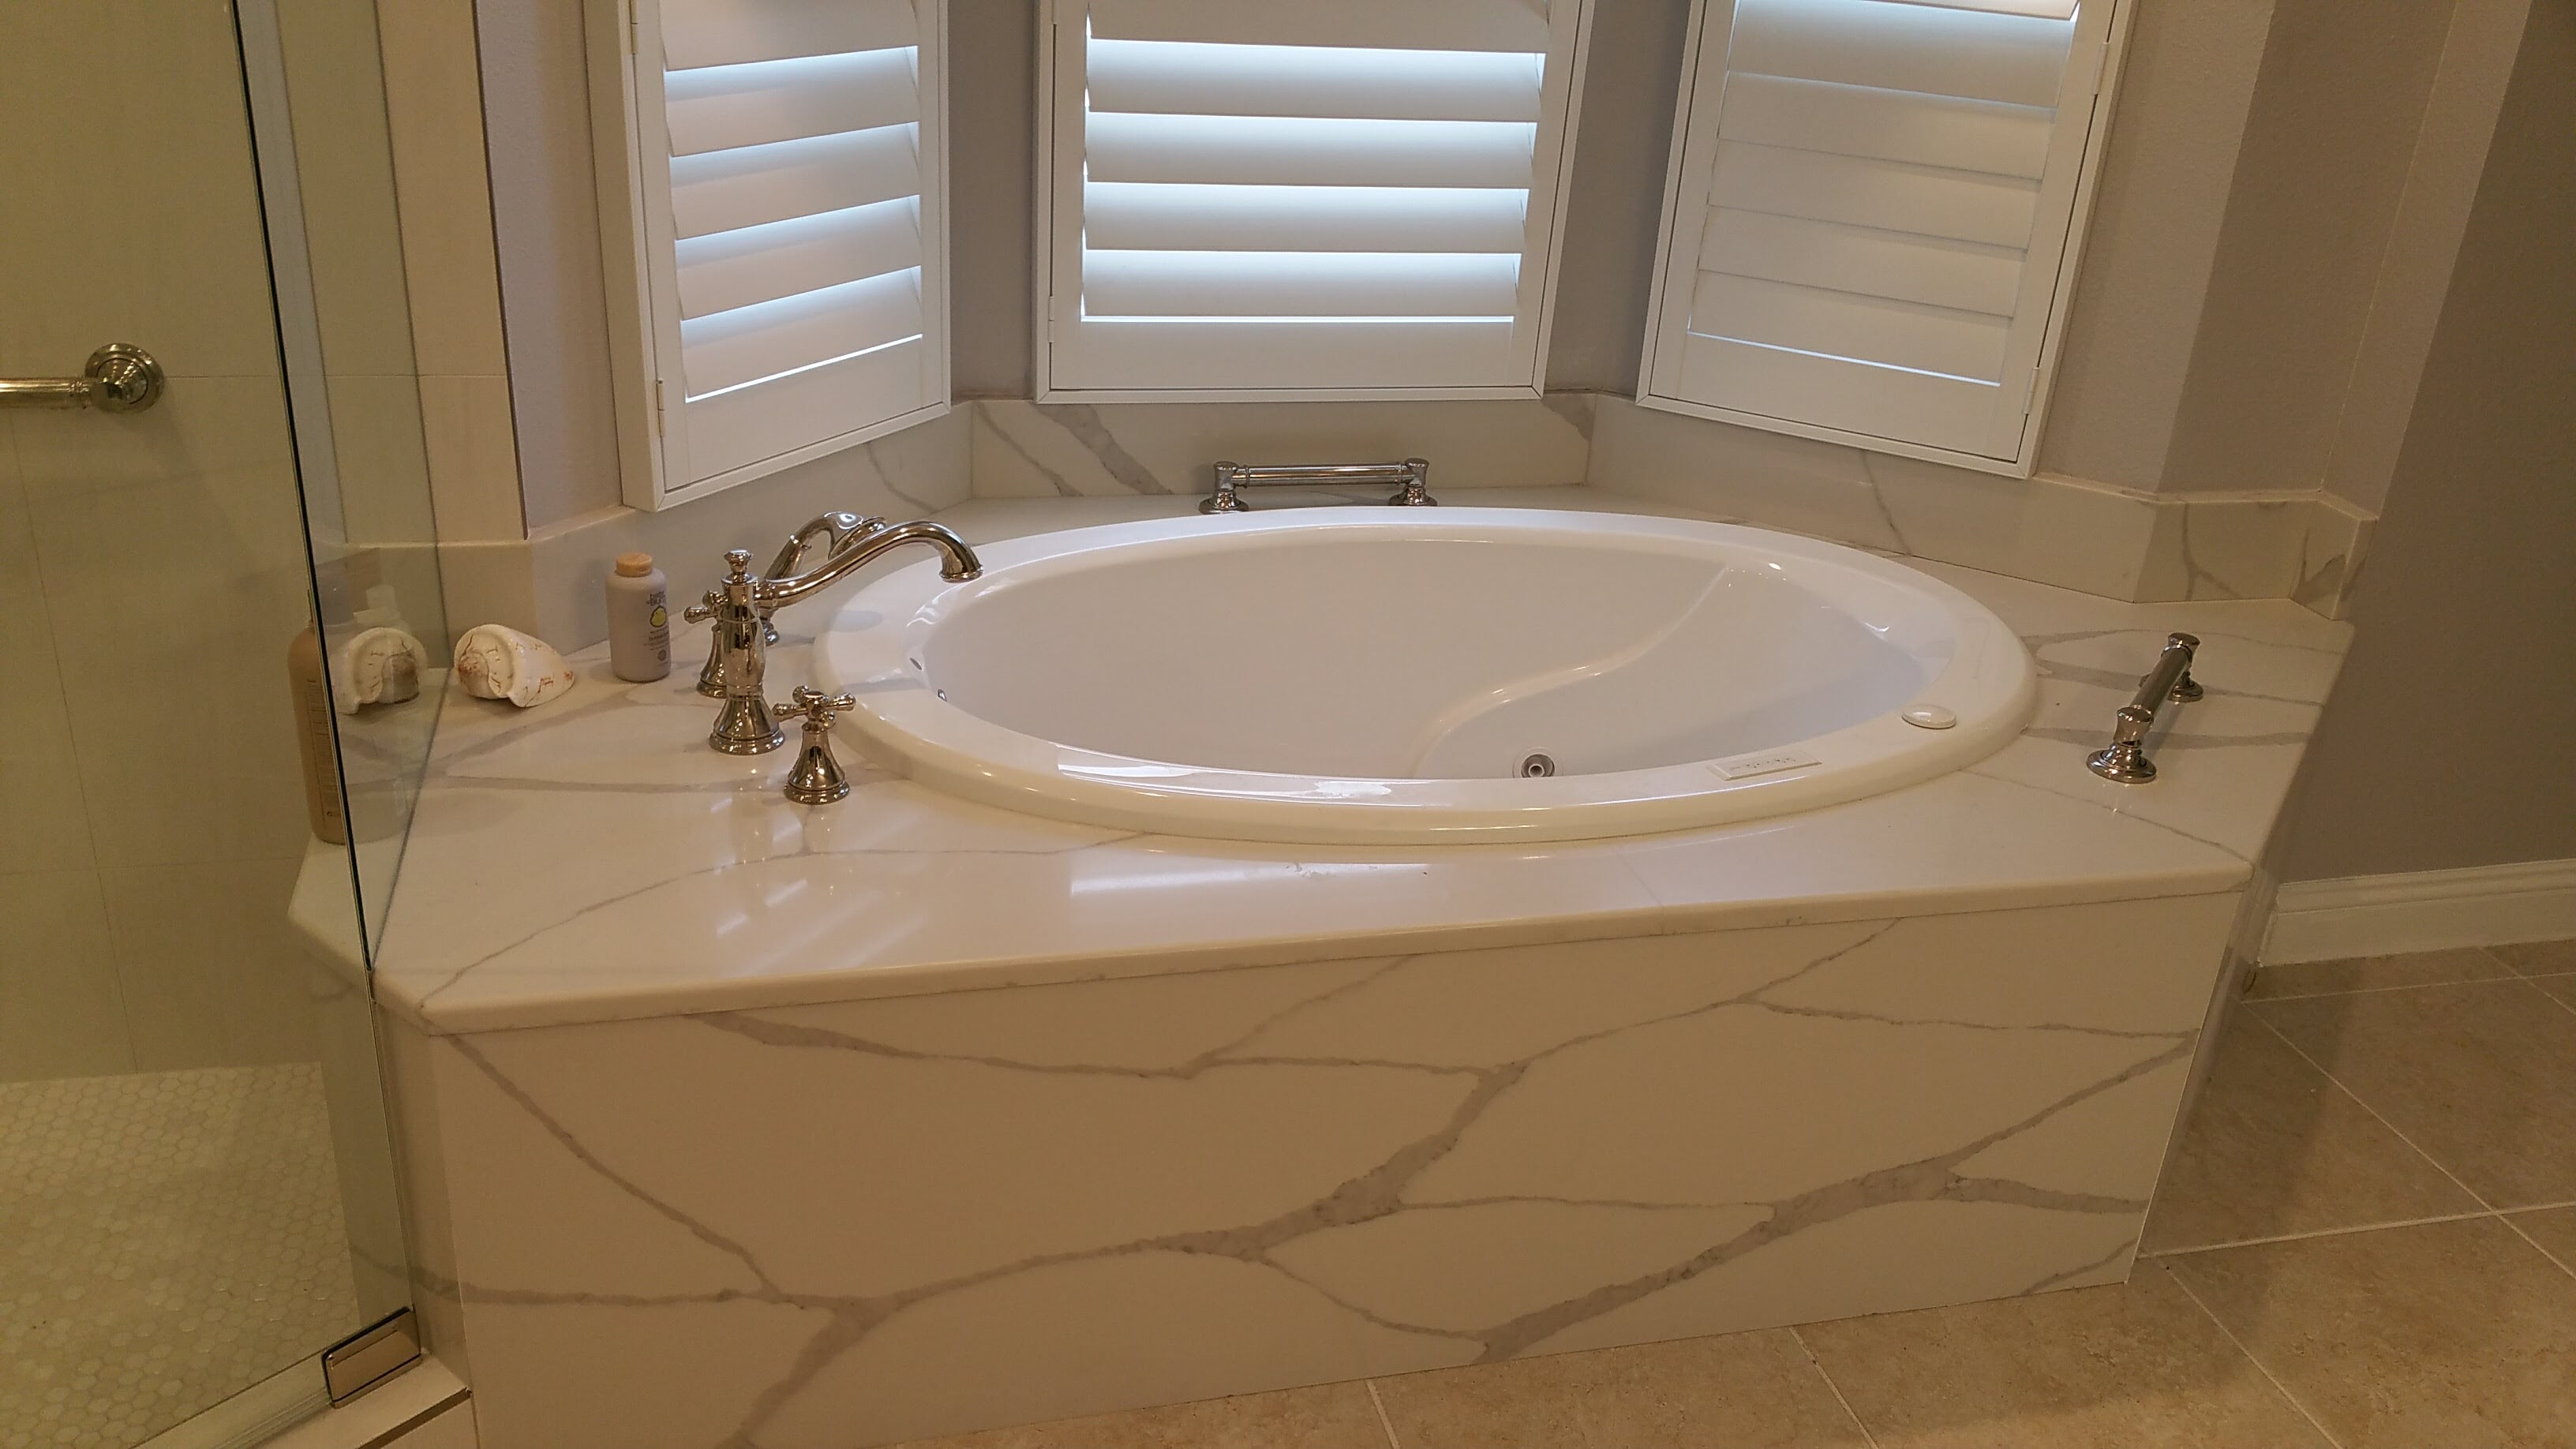 Whirlpool tub with quartz tub deck from Relo Interior Services